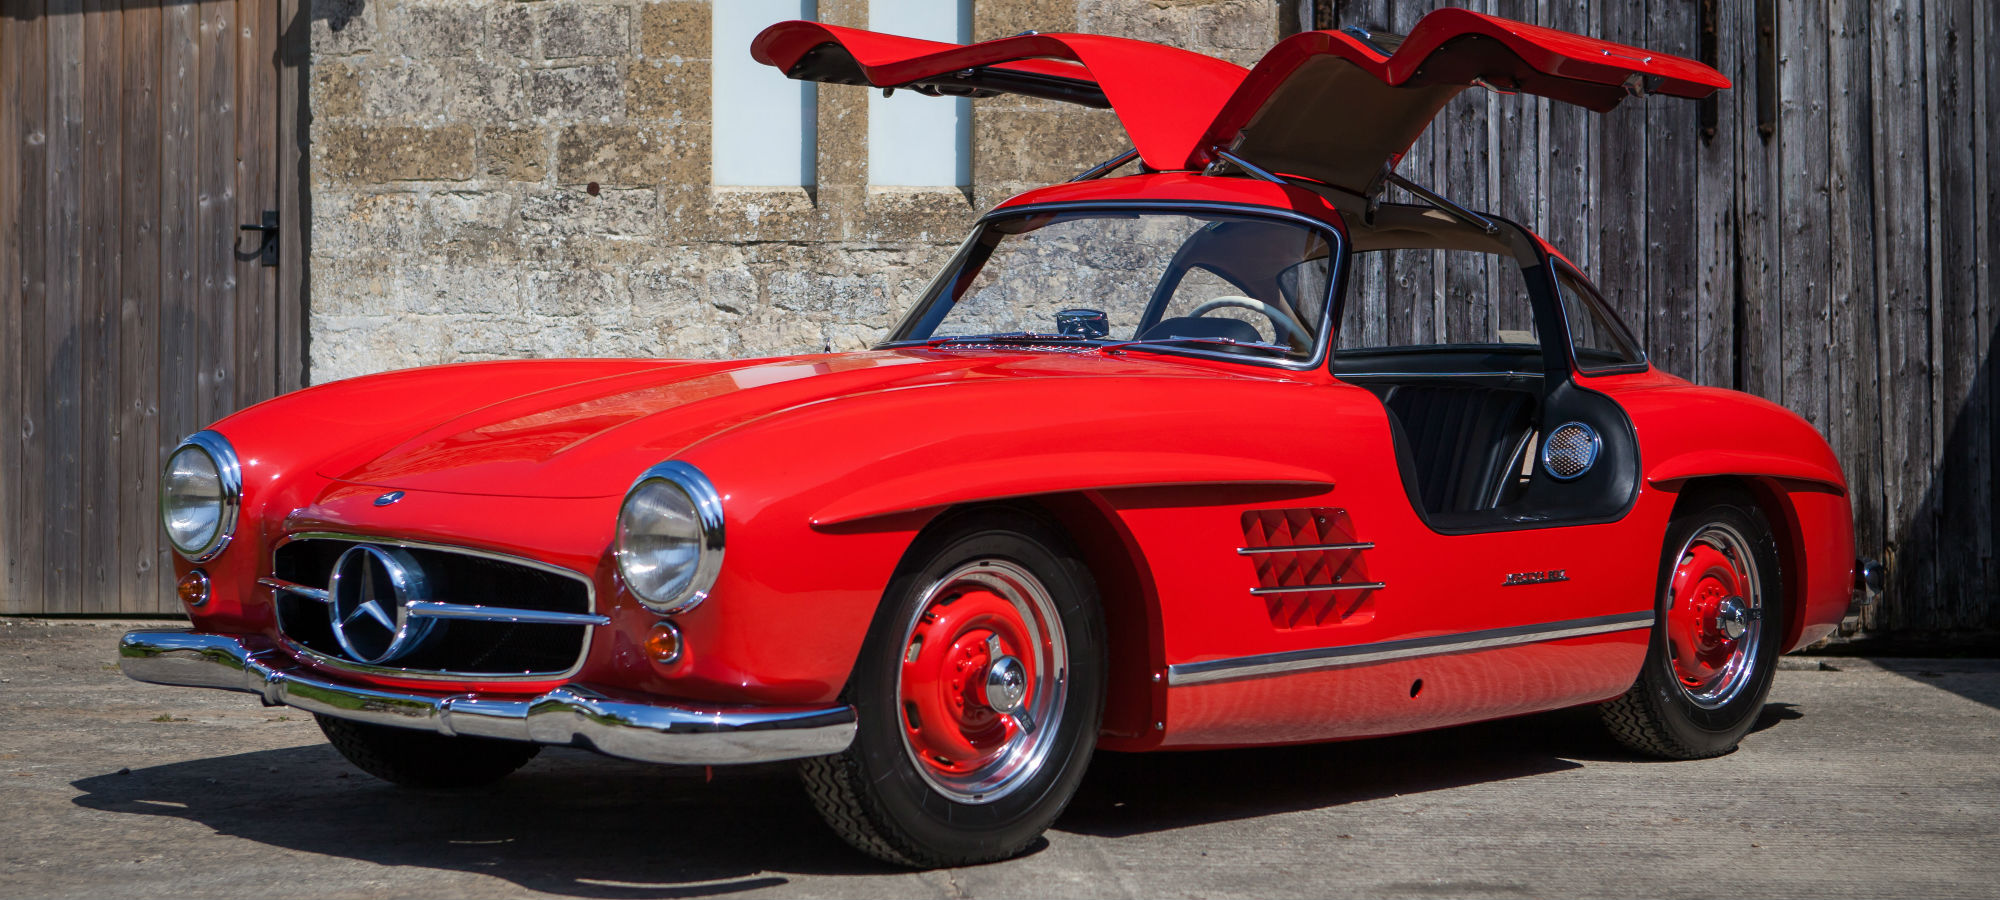 1955 mercedes benz 300sl coup gullwing william i 39 anson ltd for Mercedes benz 300sl gullwing for sale